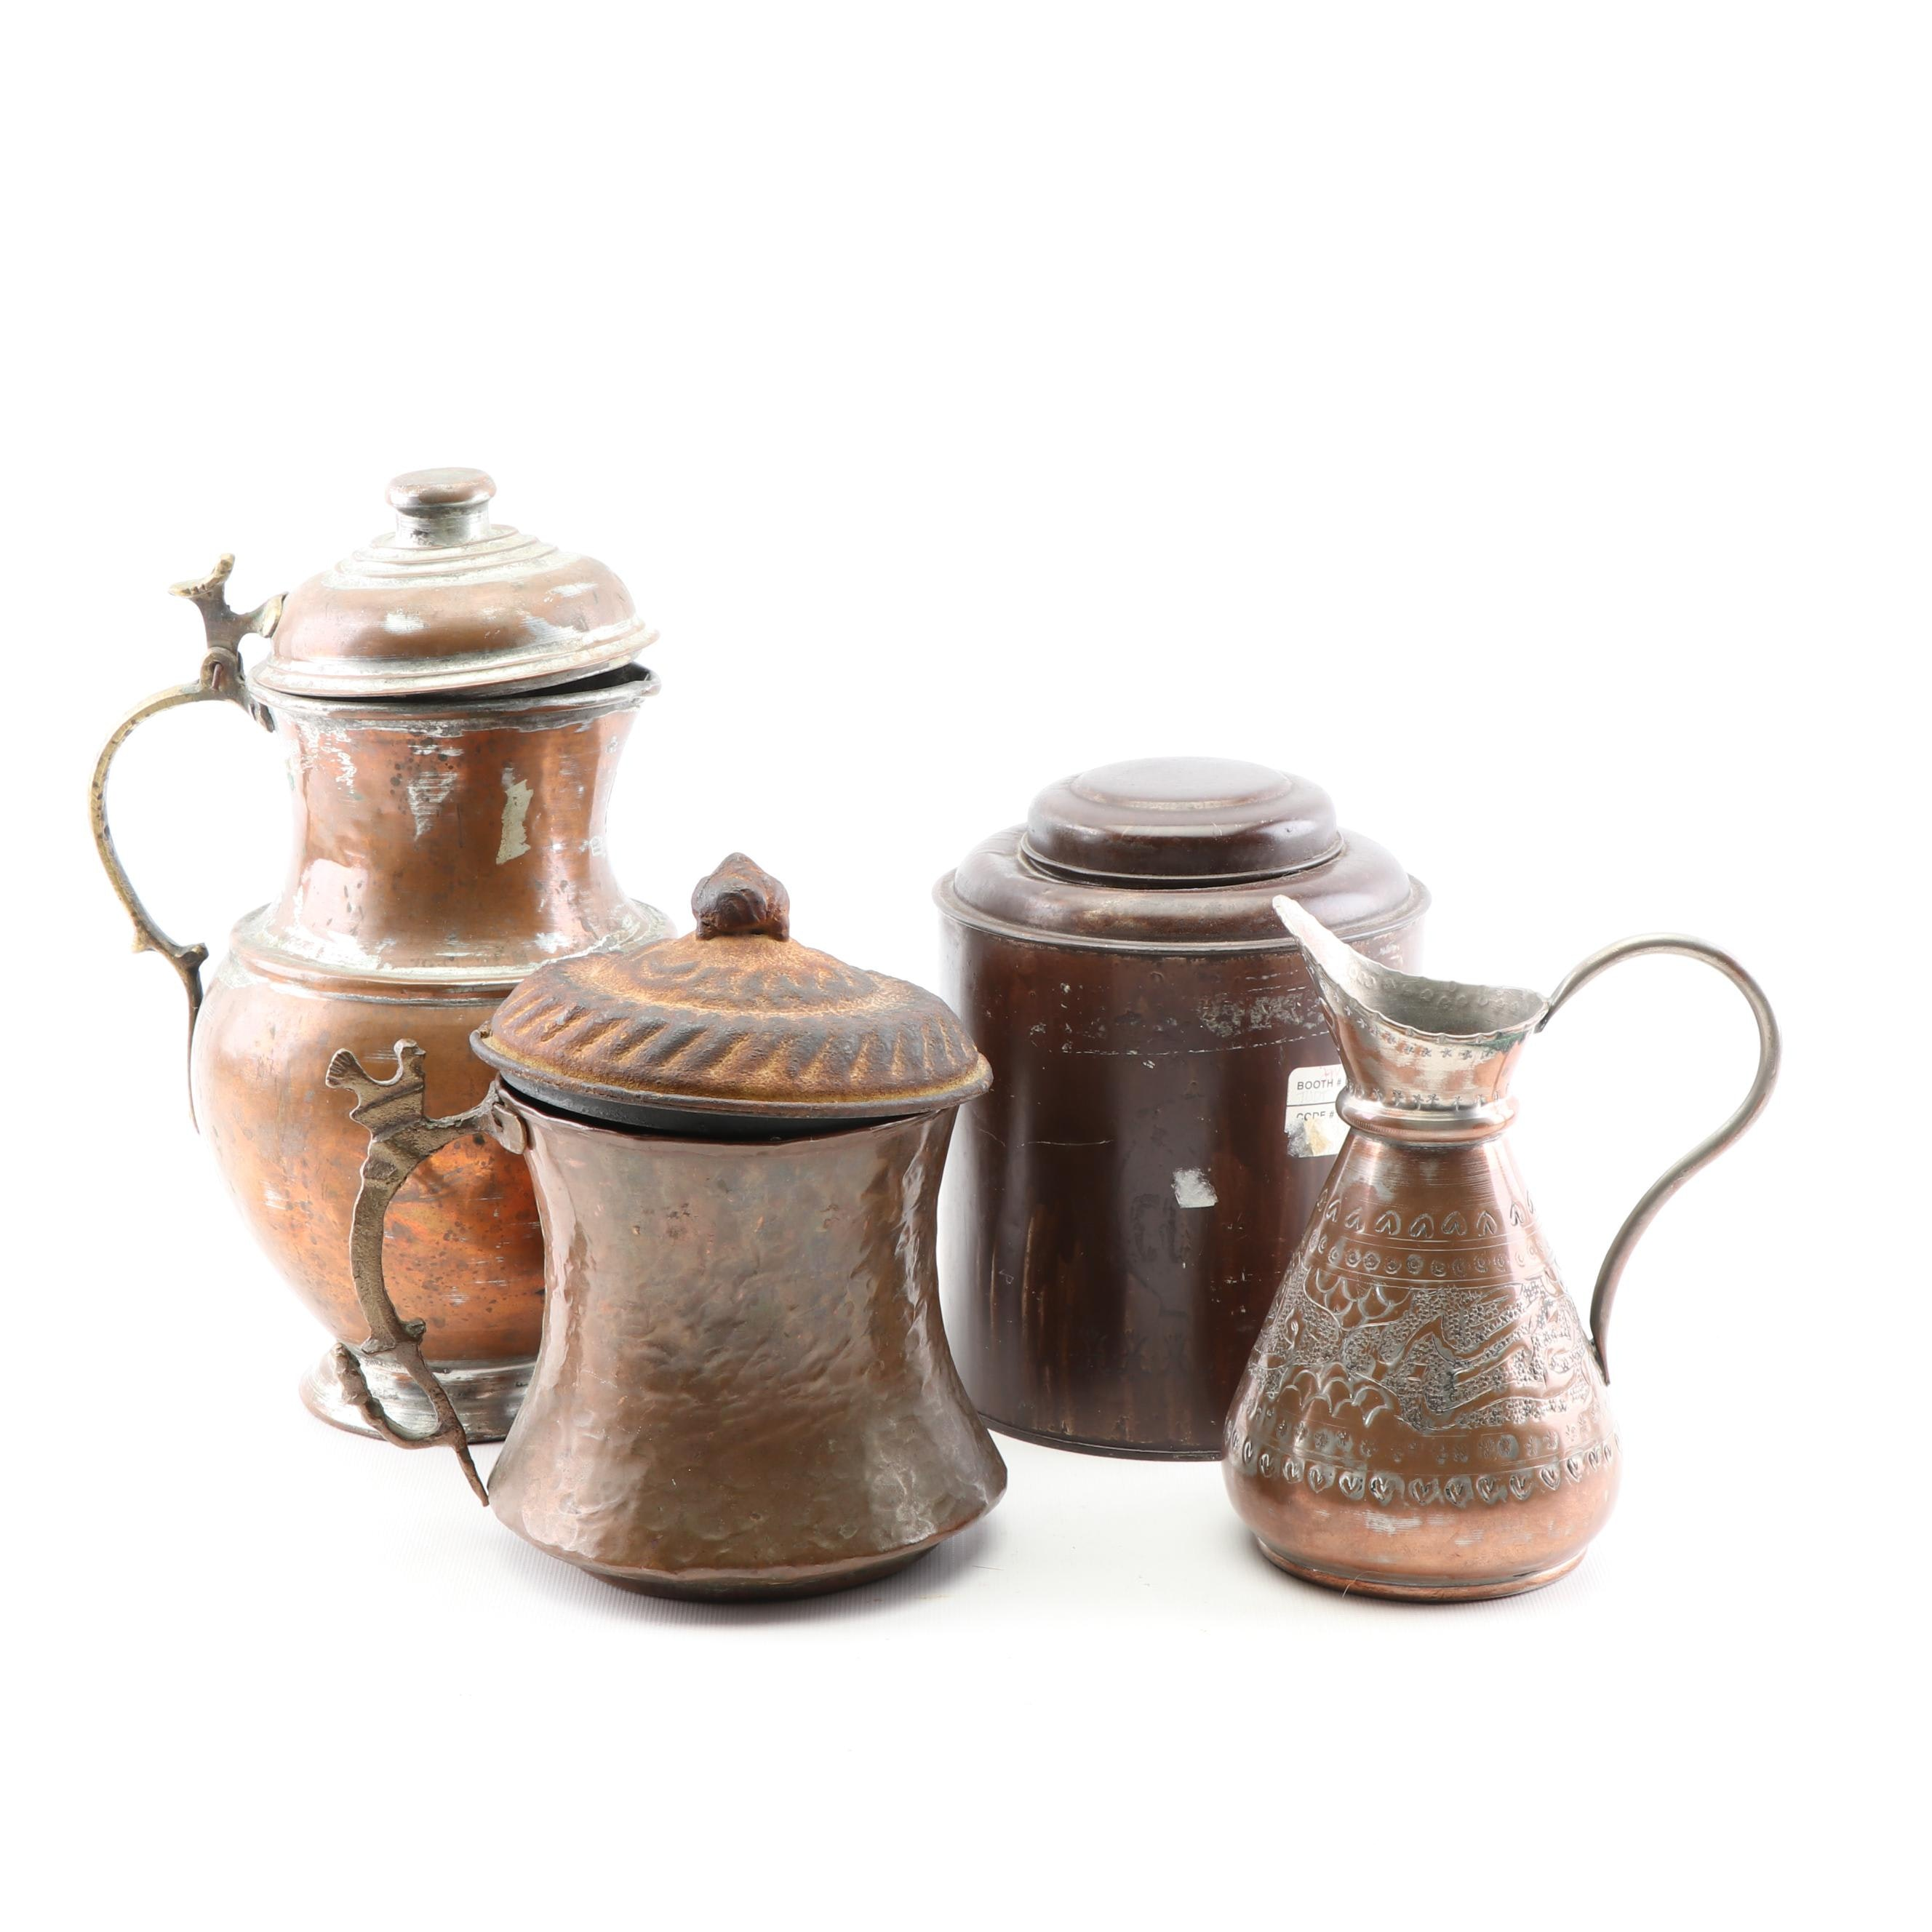 Copper and Metal Serveware including Etched and Hammered Pitcher